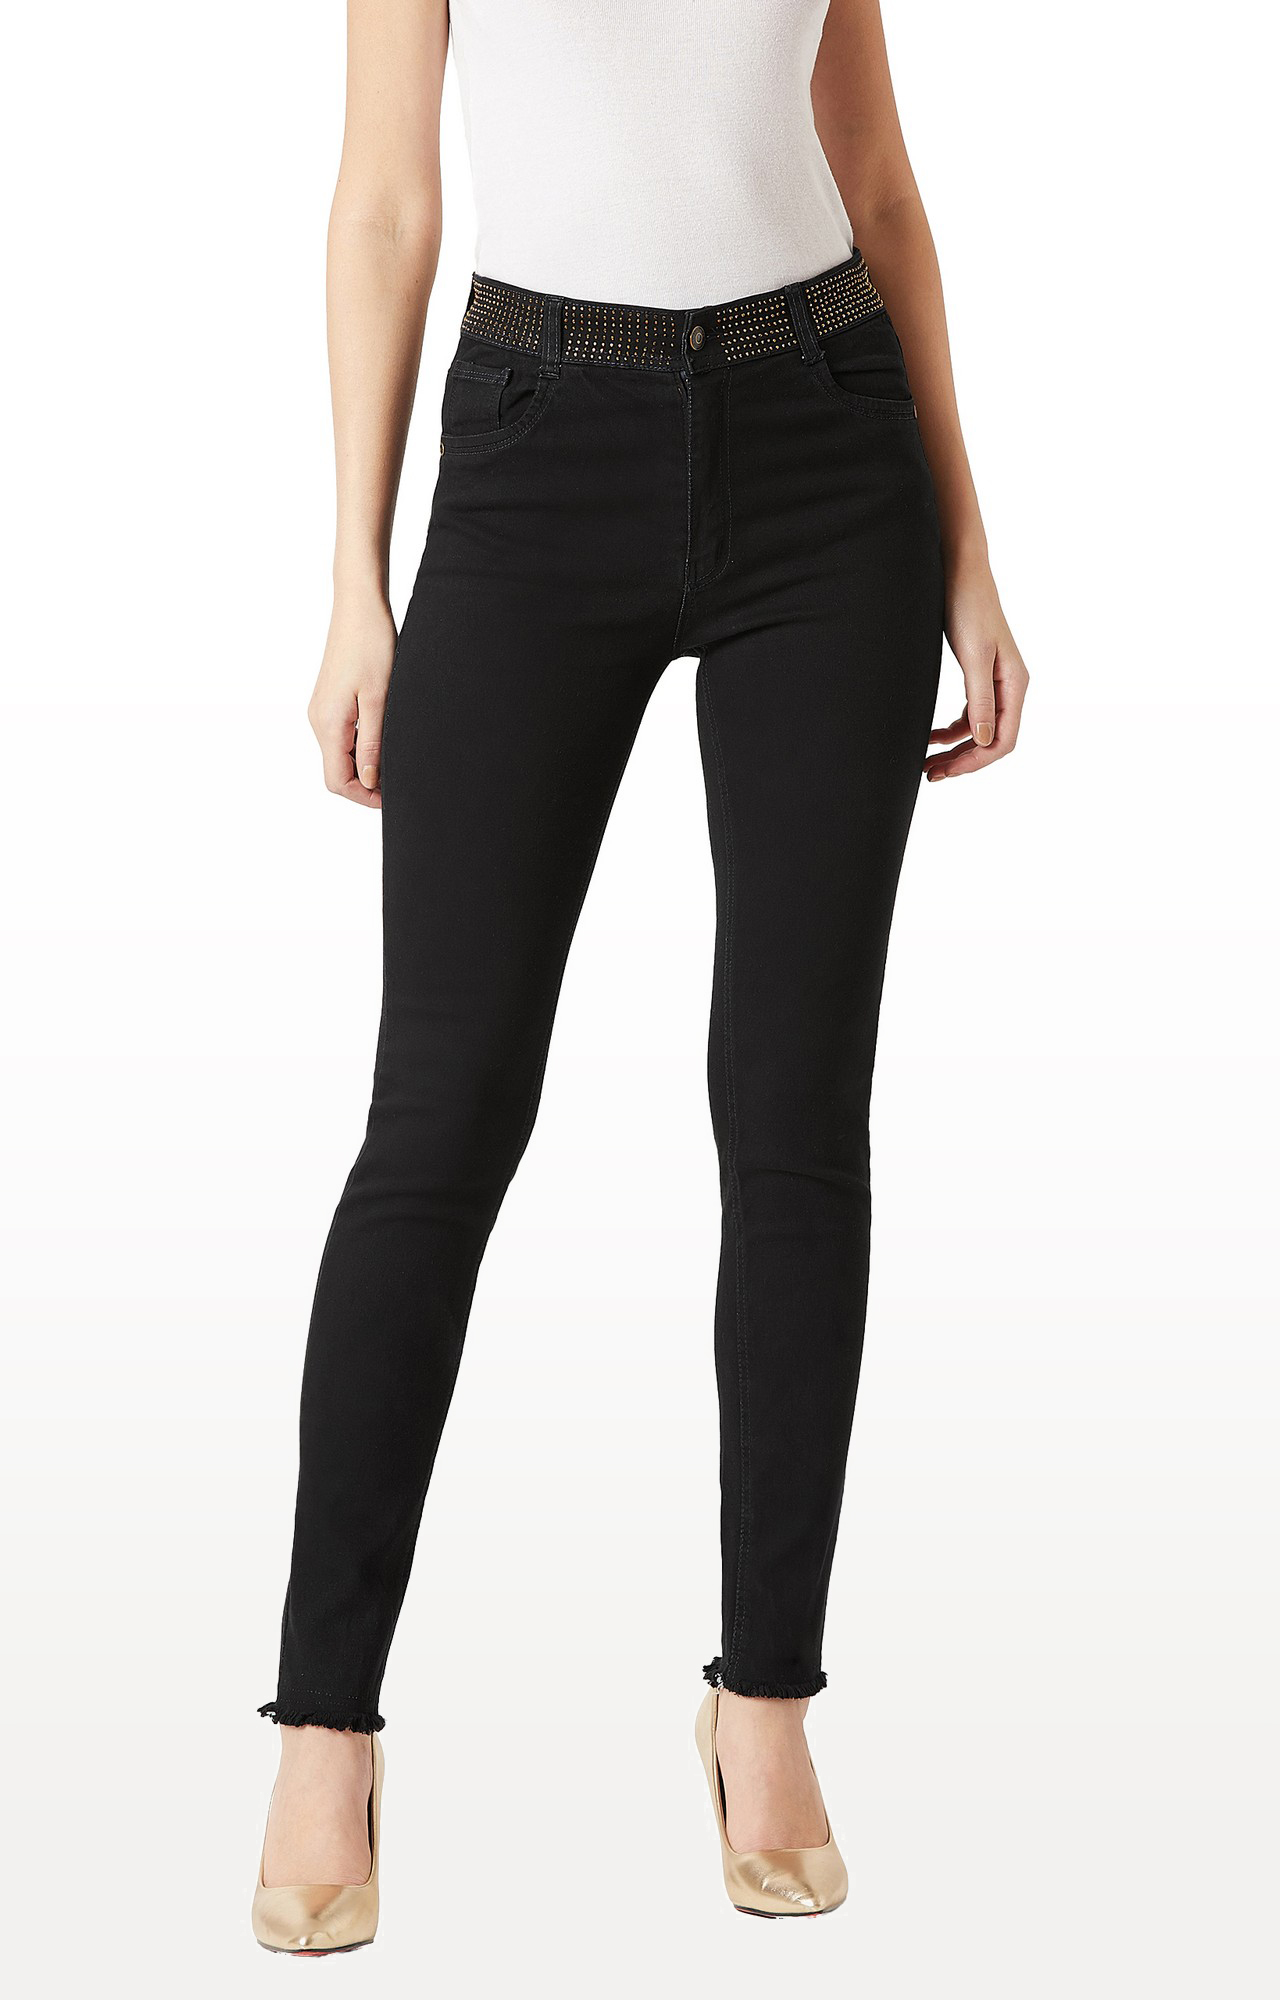 MISS CHASE | Black Solid Embellished Raw Edge Detailing Waistband High Rise Jeans